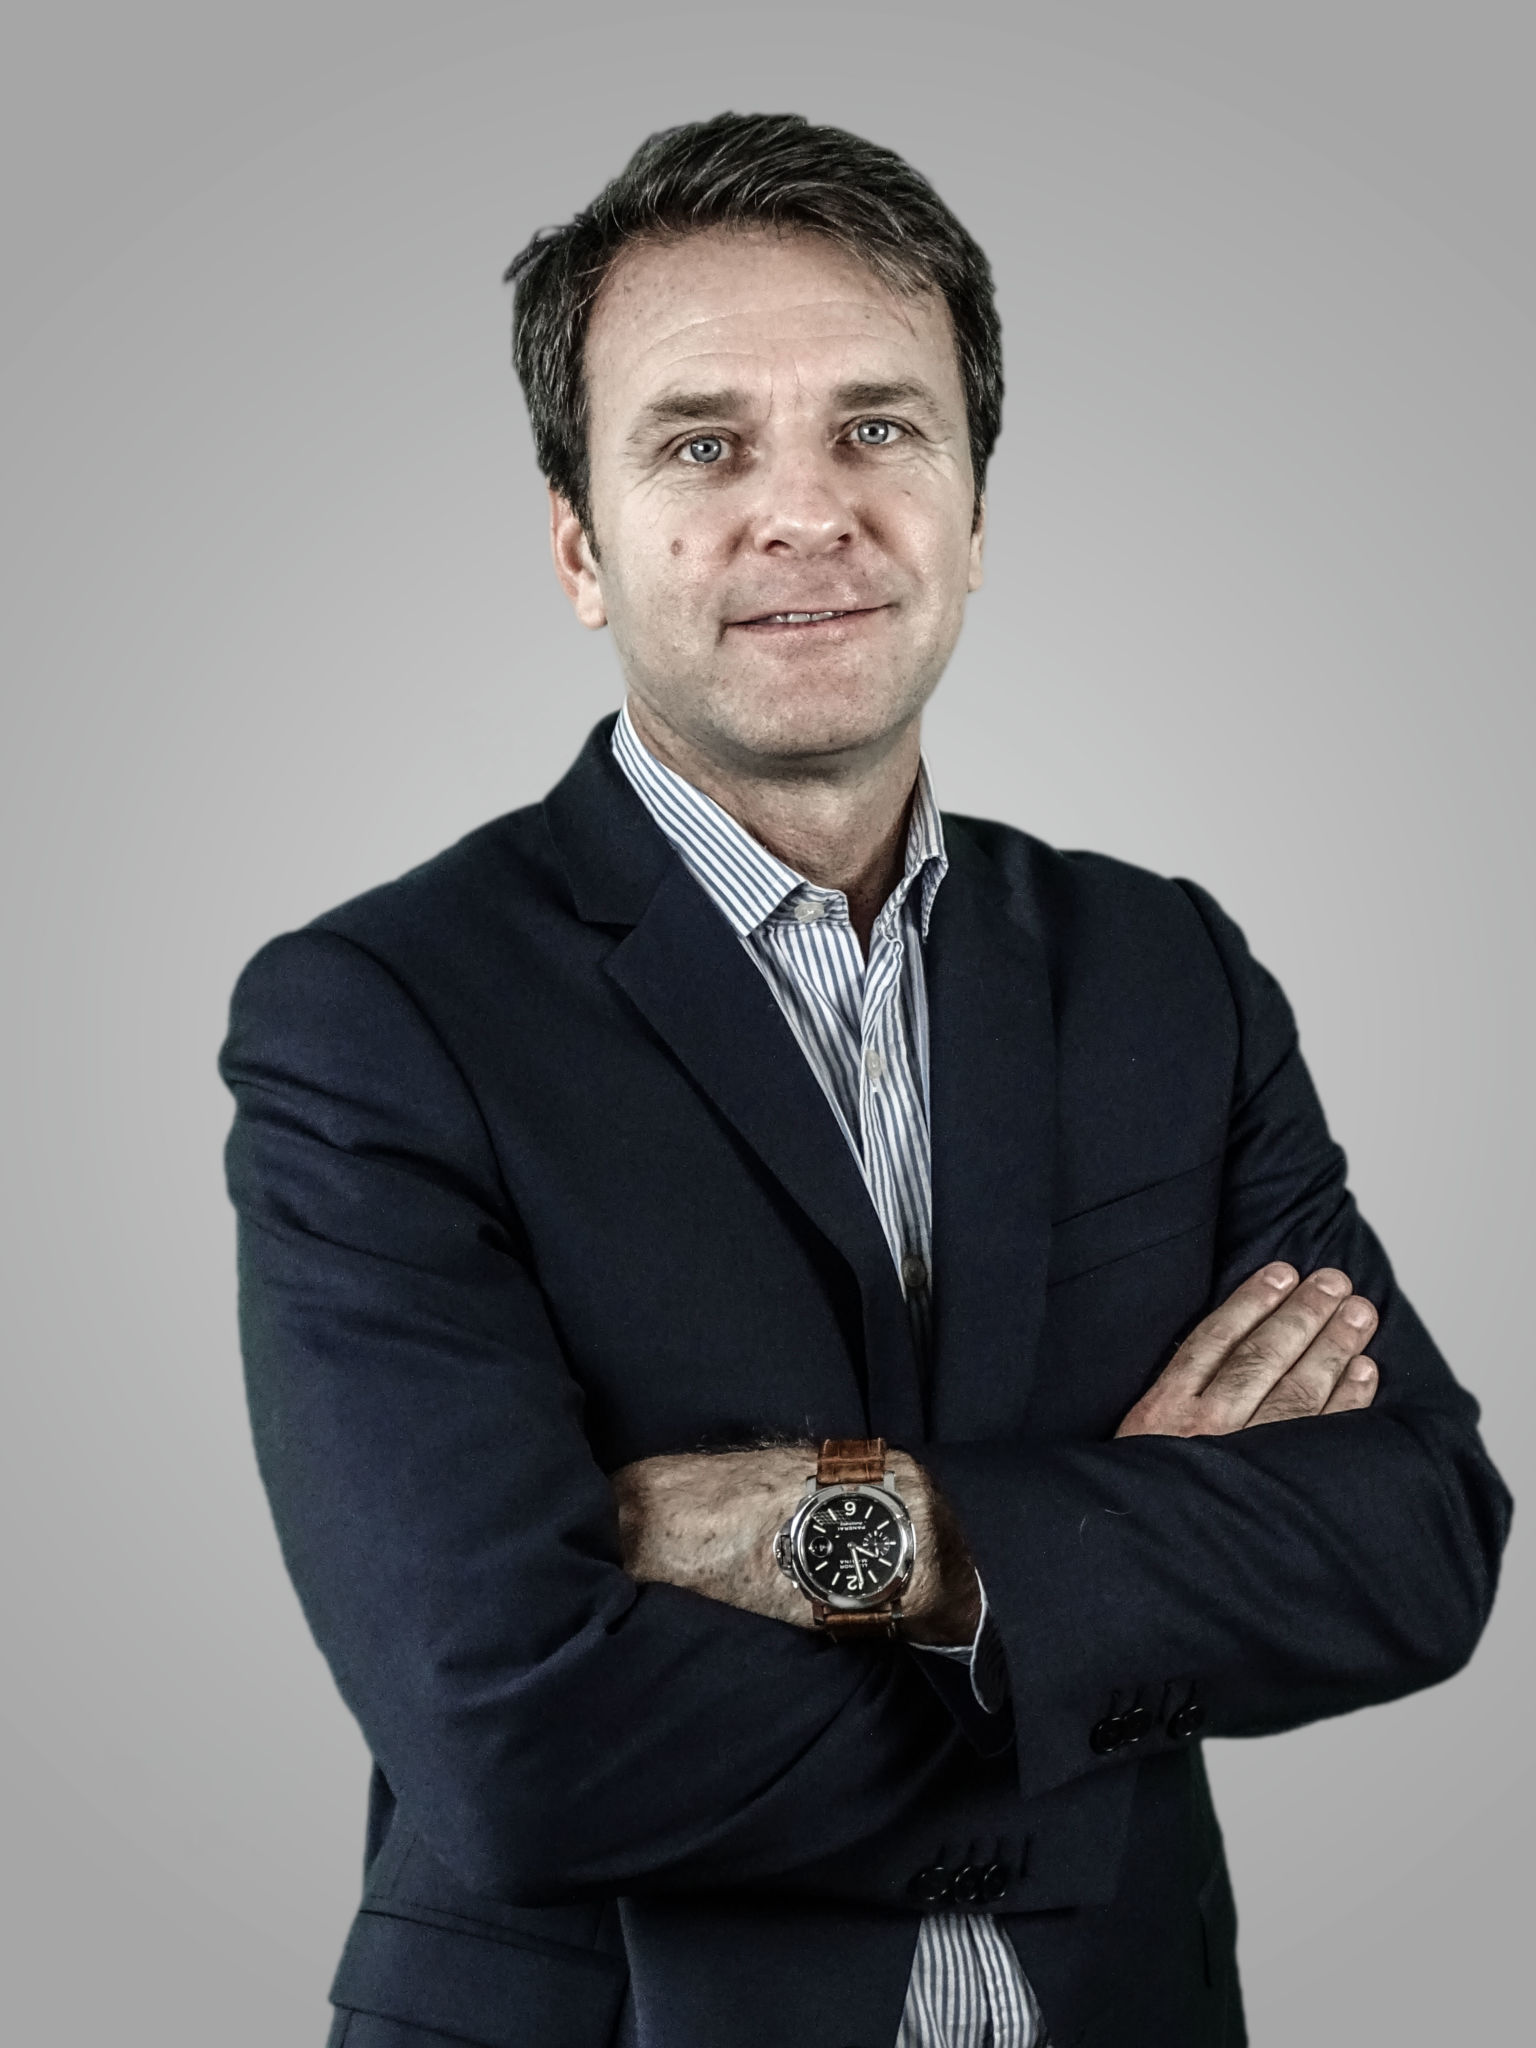 alexandre-fedoroff-directeur-general-groupe-bsl-societe-de-securite-ile-de-france